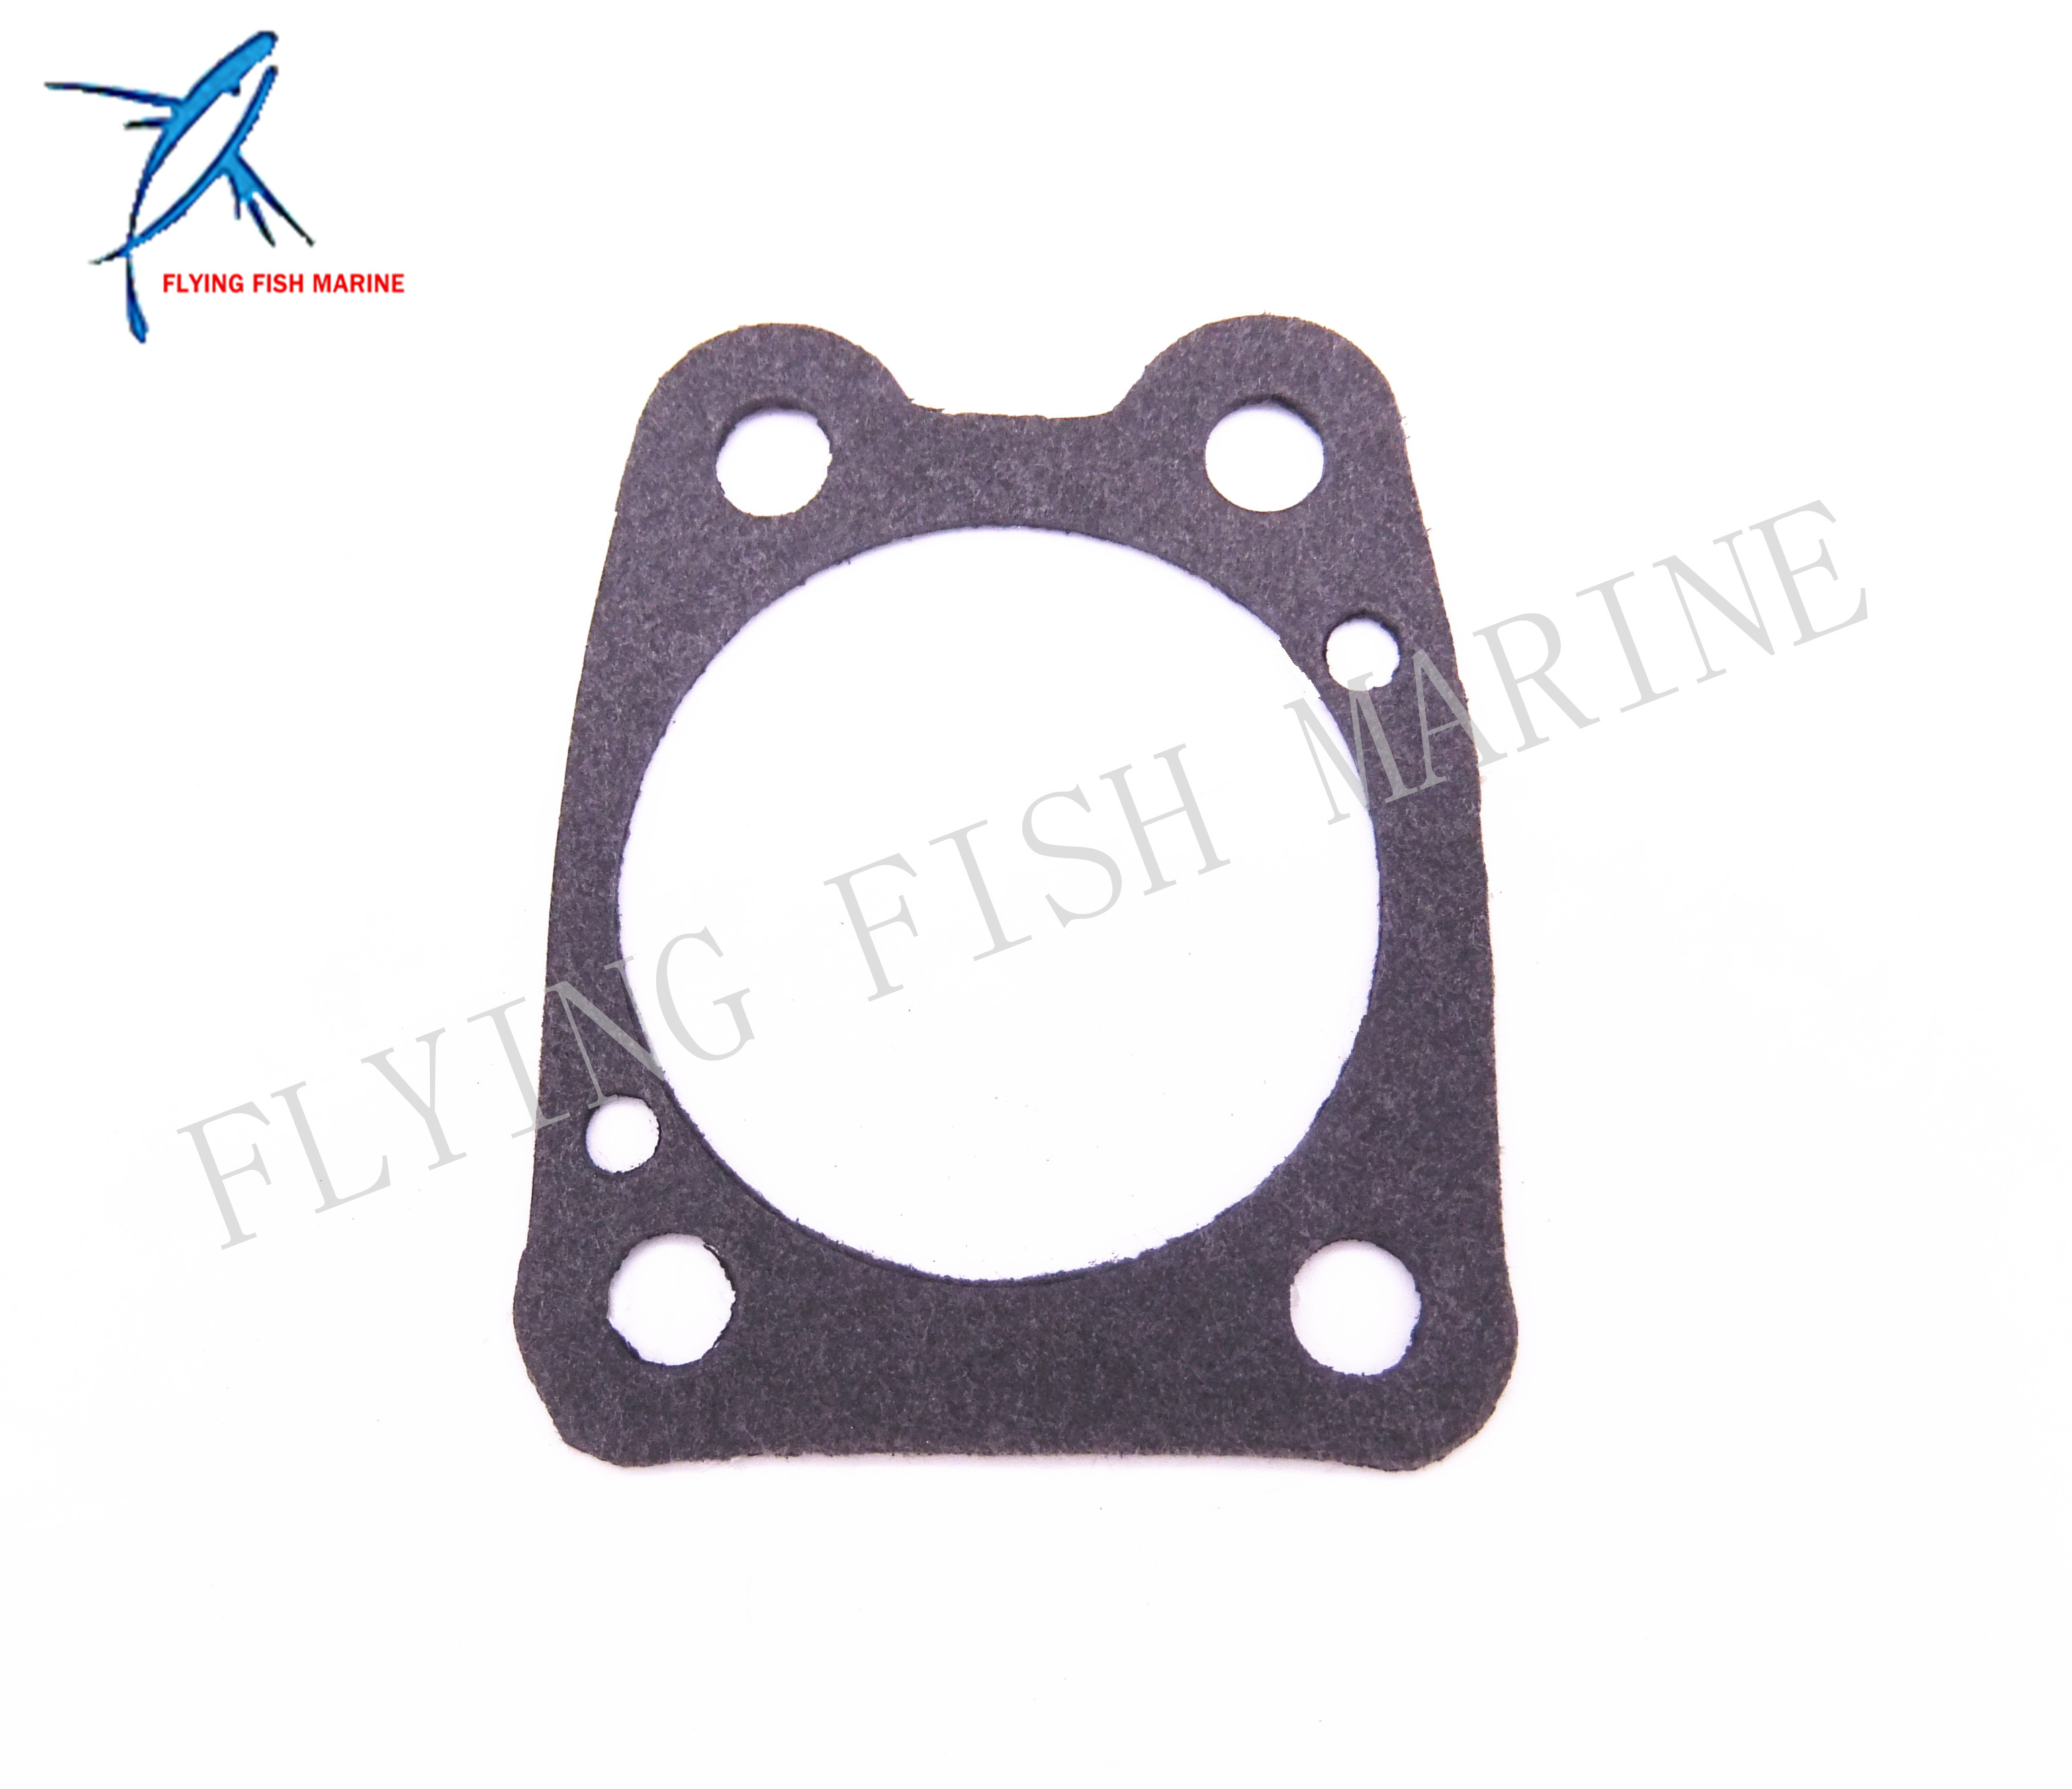 68D-G4315-A0 Outboard Motor  Water Pump Gasket for Yamaha F4 4-Stroke Boat Engine Free Shipping